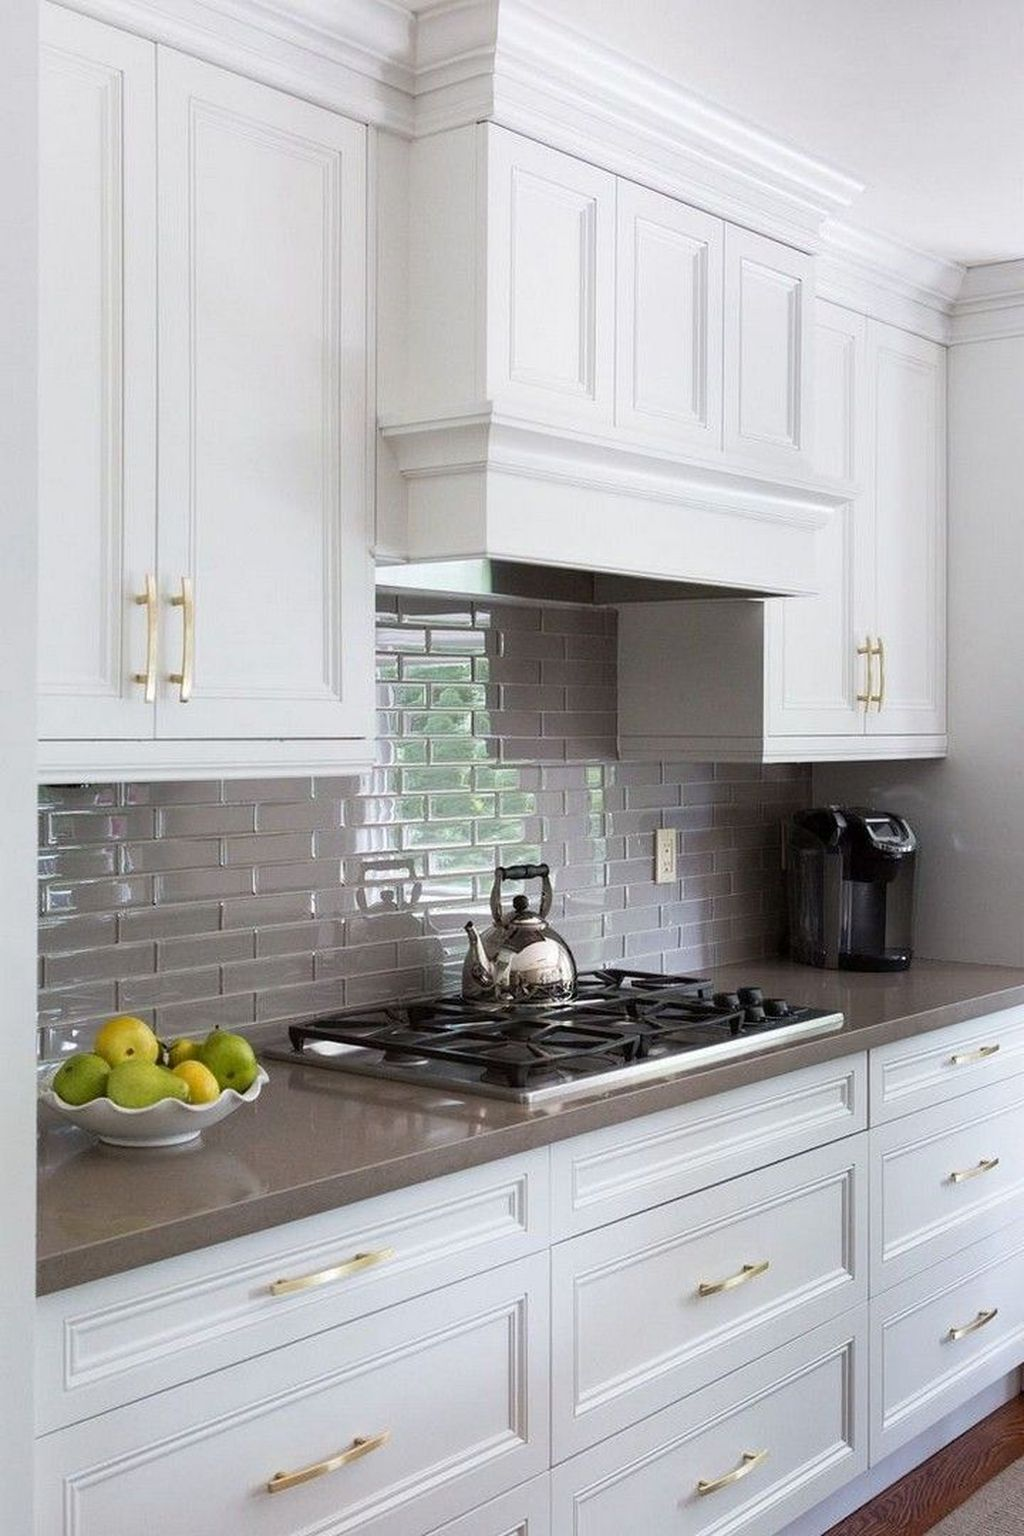 White Cabinets Dark Countertops And Slate Backsplash Trendy Kitchen Backsplash Backsplash For White Cabinets Slate Backsplash